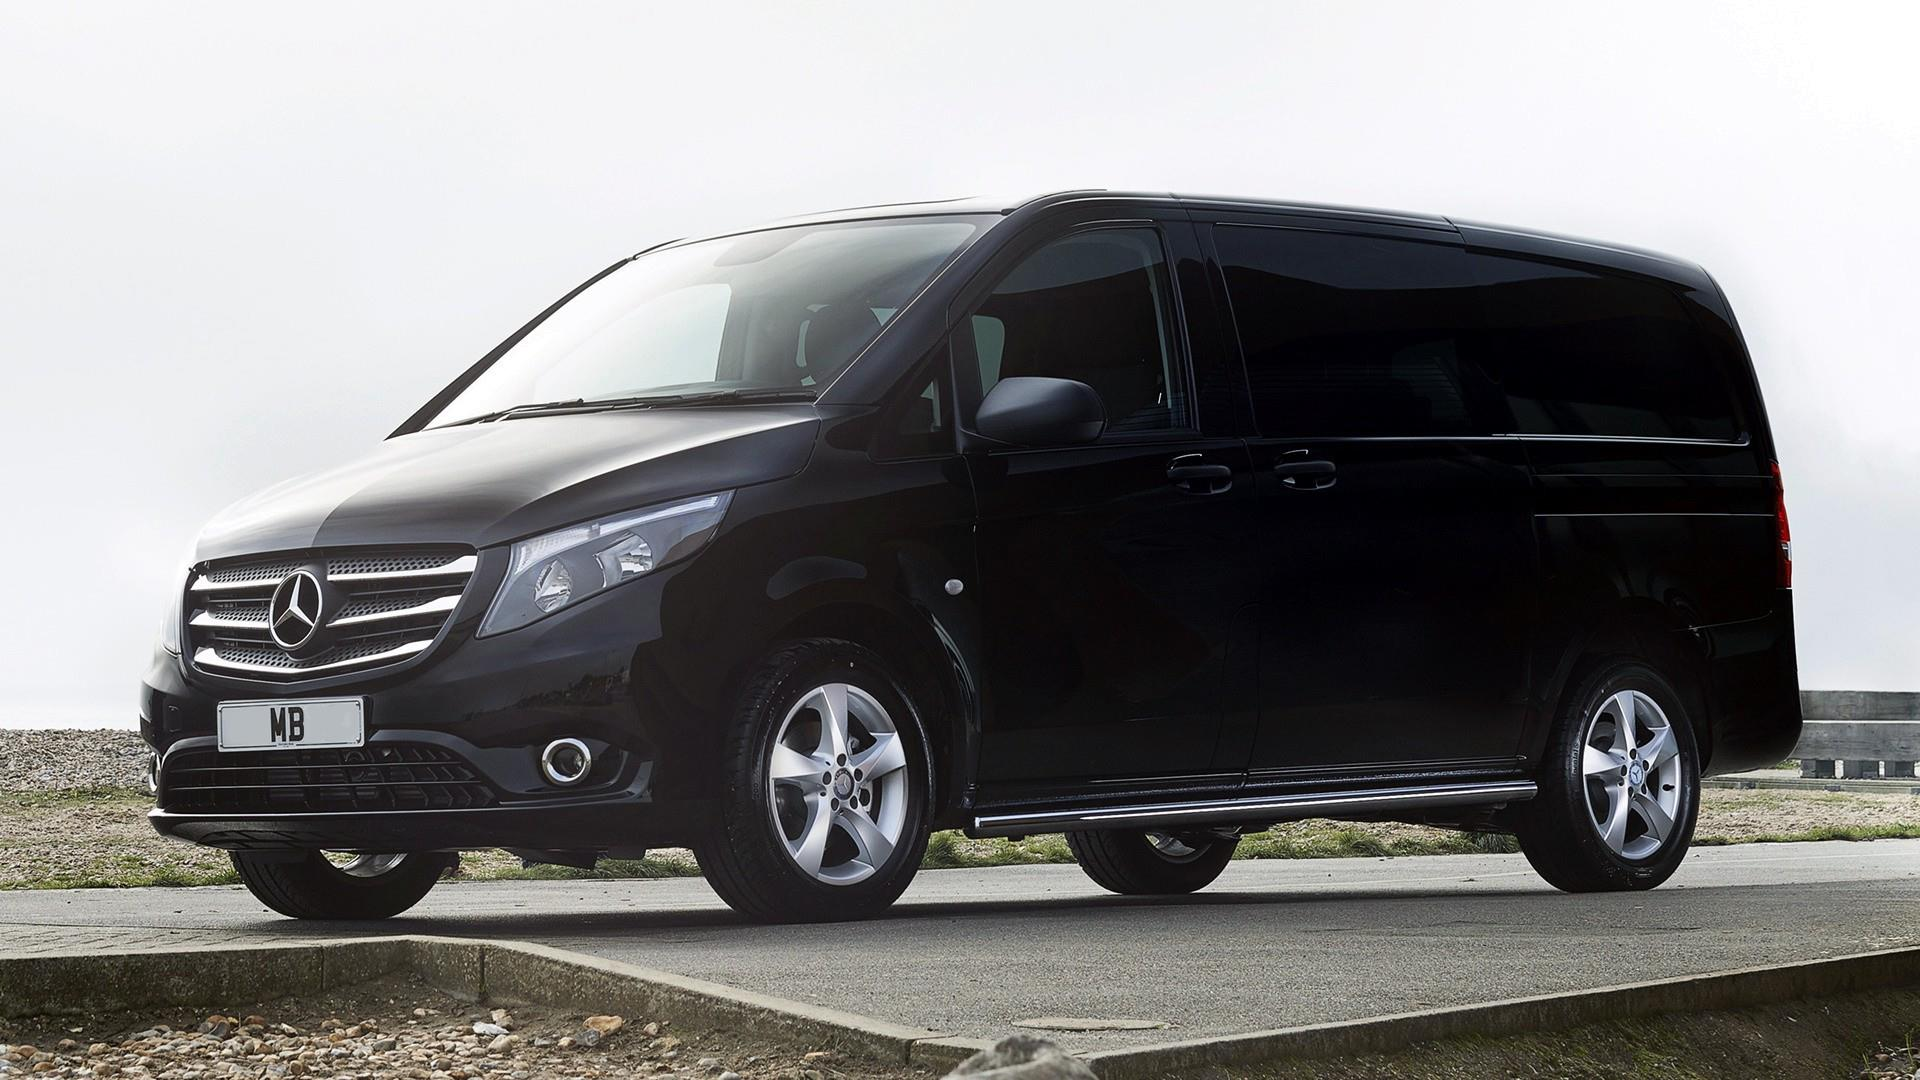 carpixel.net-2015-mercedes-benz-vito-sport-uk-36052-hdMB